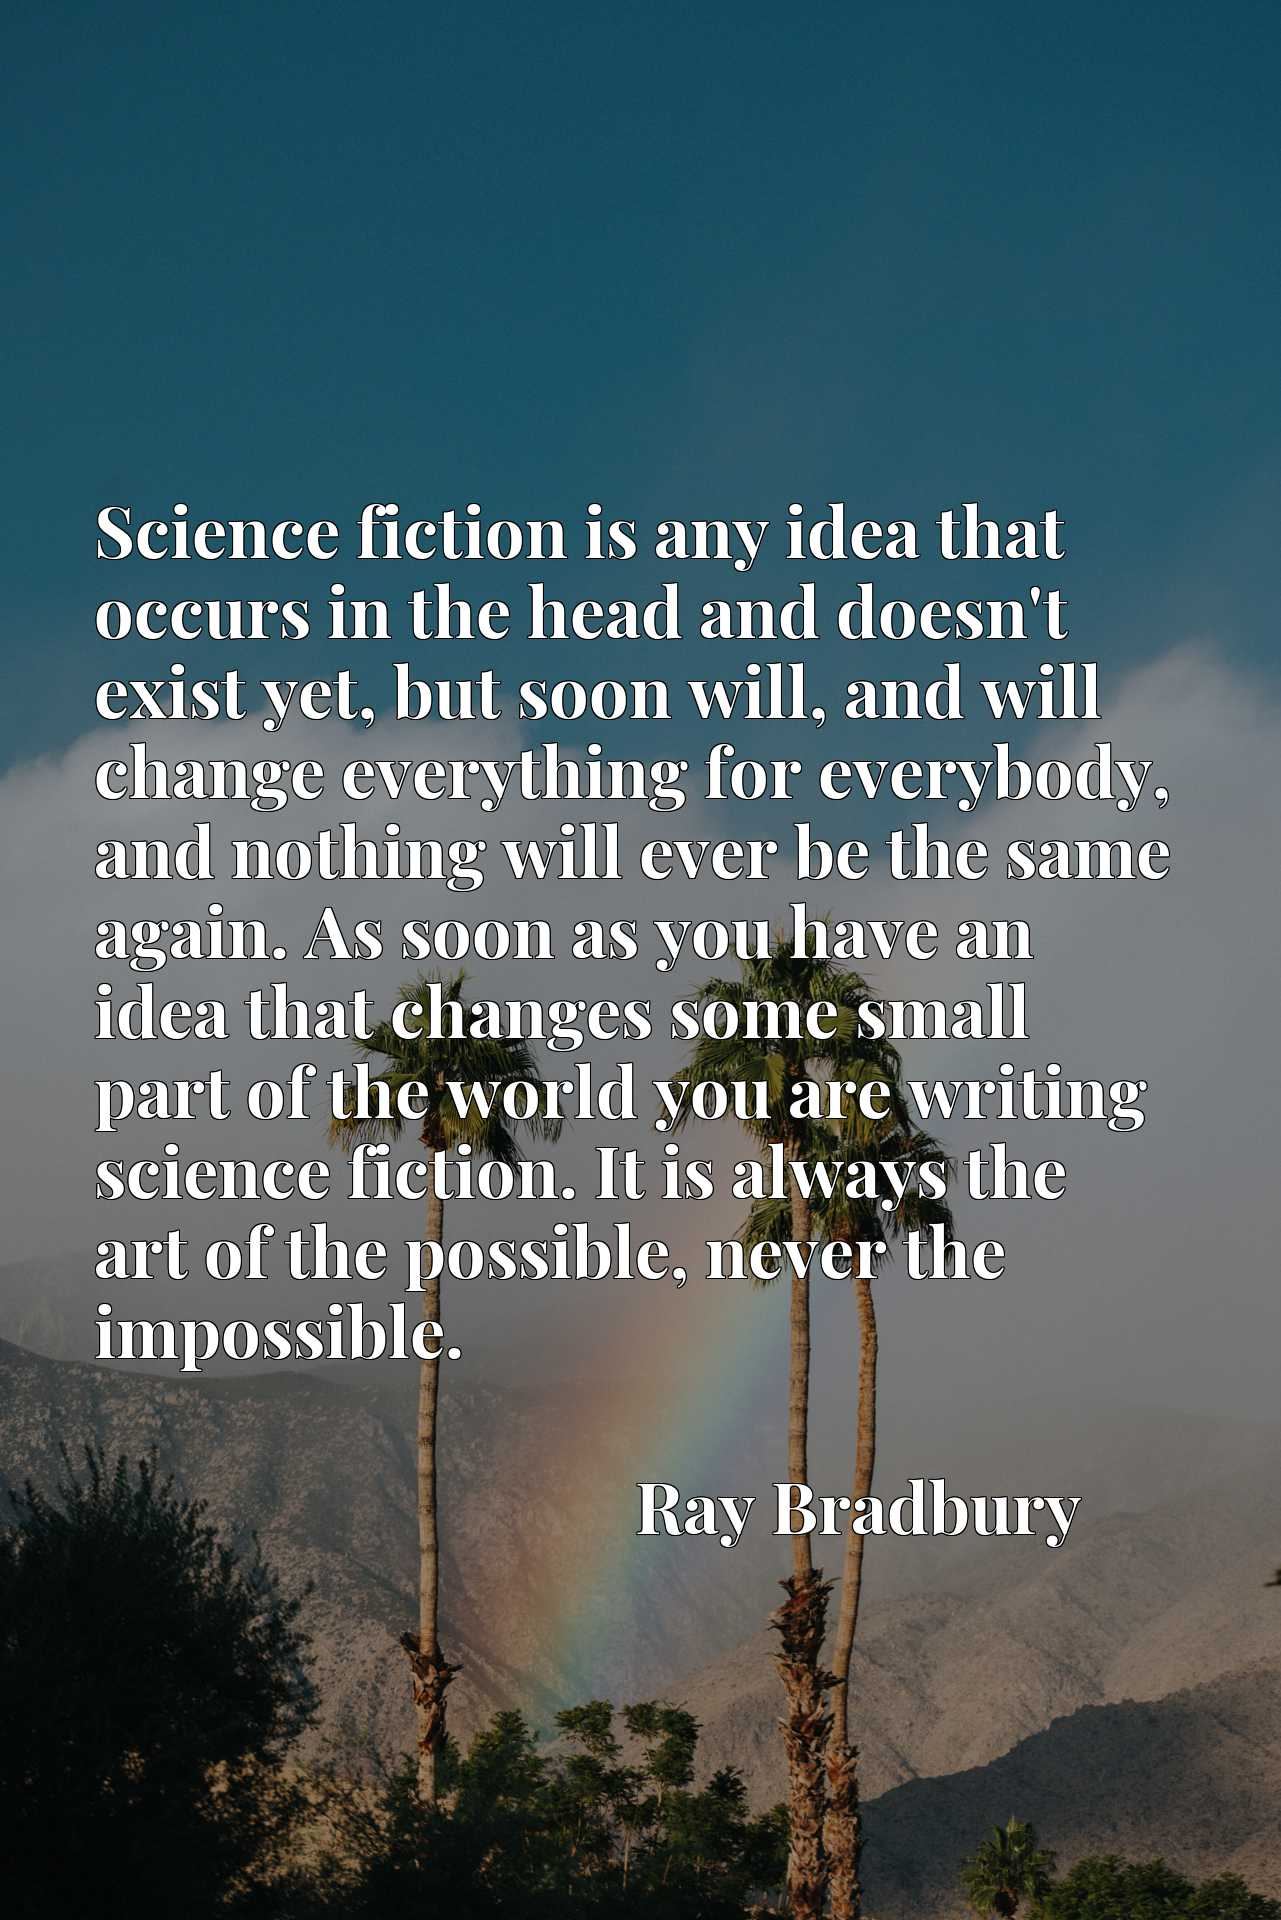 Science fiction is any idea that occurs in the head and doesn't exist yet, but soon will, and will change everything for everybody, and nothing will ever be the same again. As soon as you have an idea that changes some small part of the world you are writing science fiction. It is always the art of the possible, never the impossible.